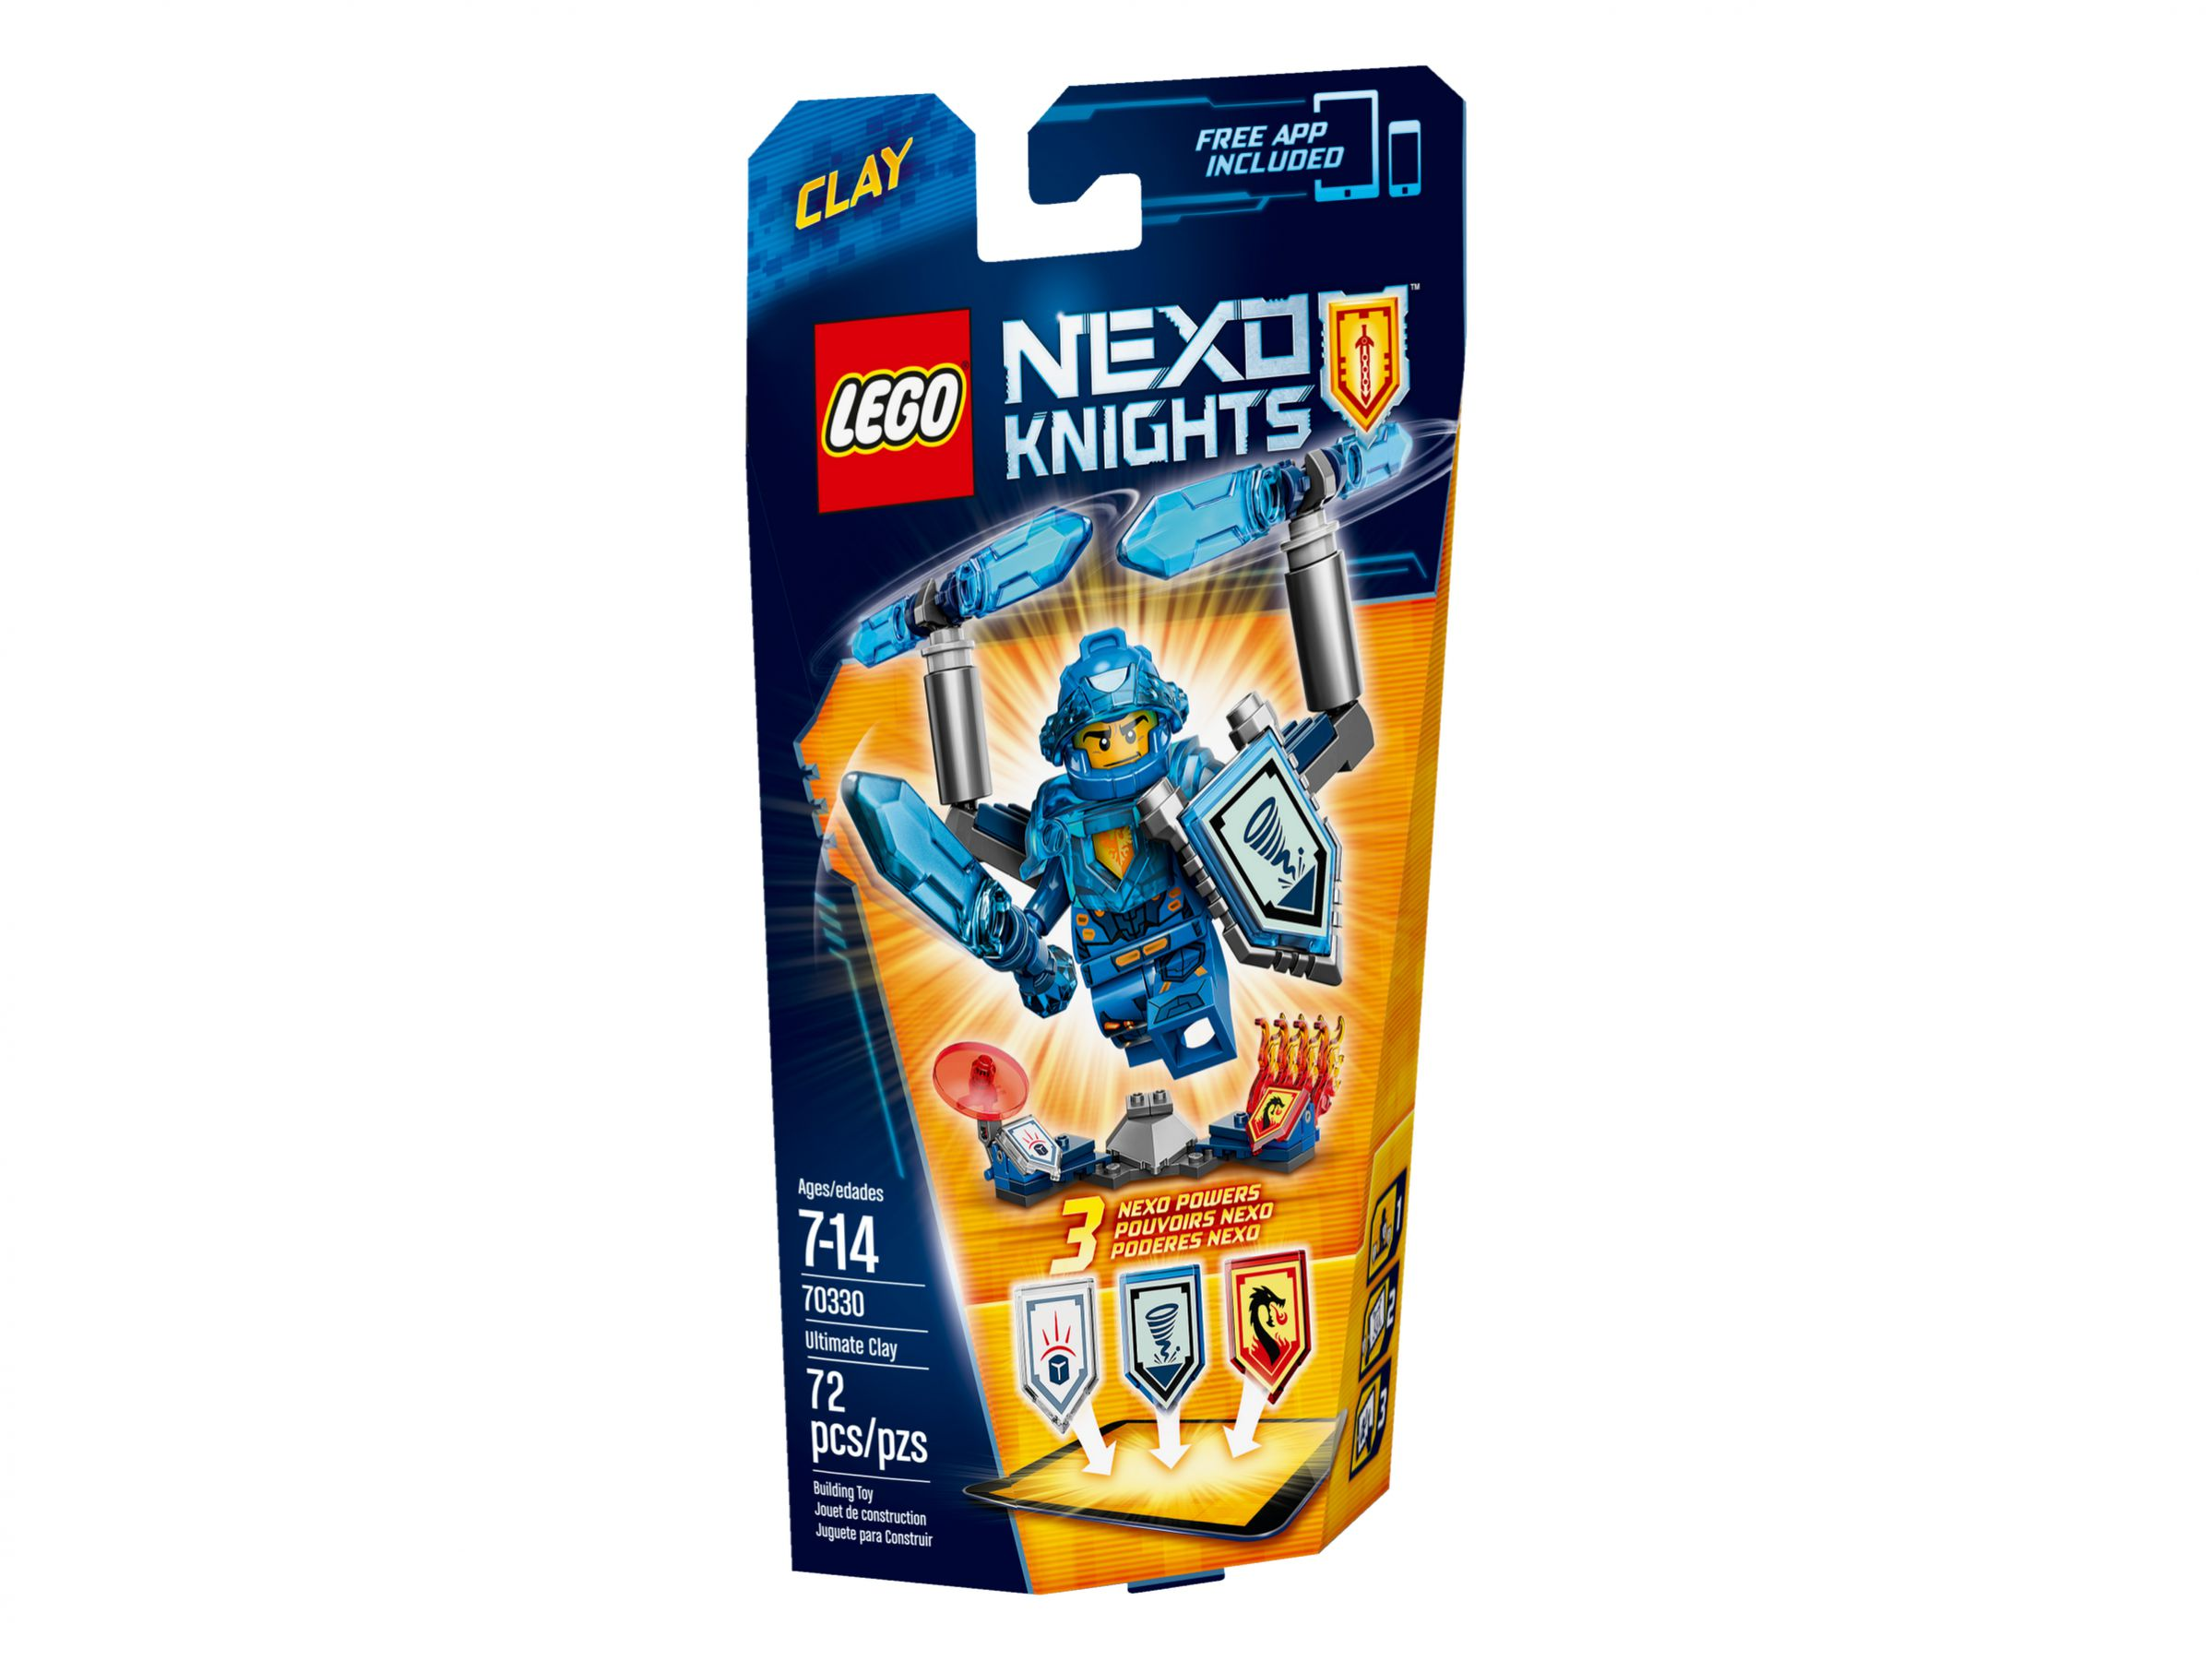 LEGO Nexo Knights 70330 Ultimativer Clay LEGO_70330_alt1.jpg